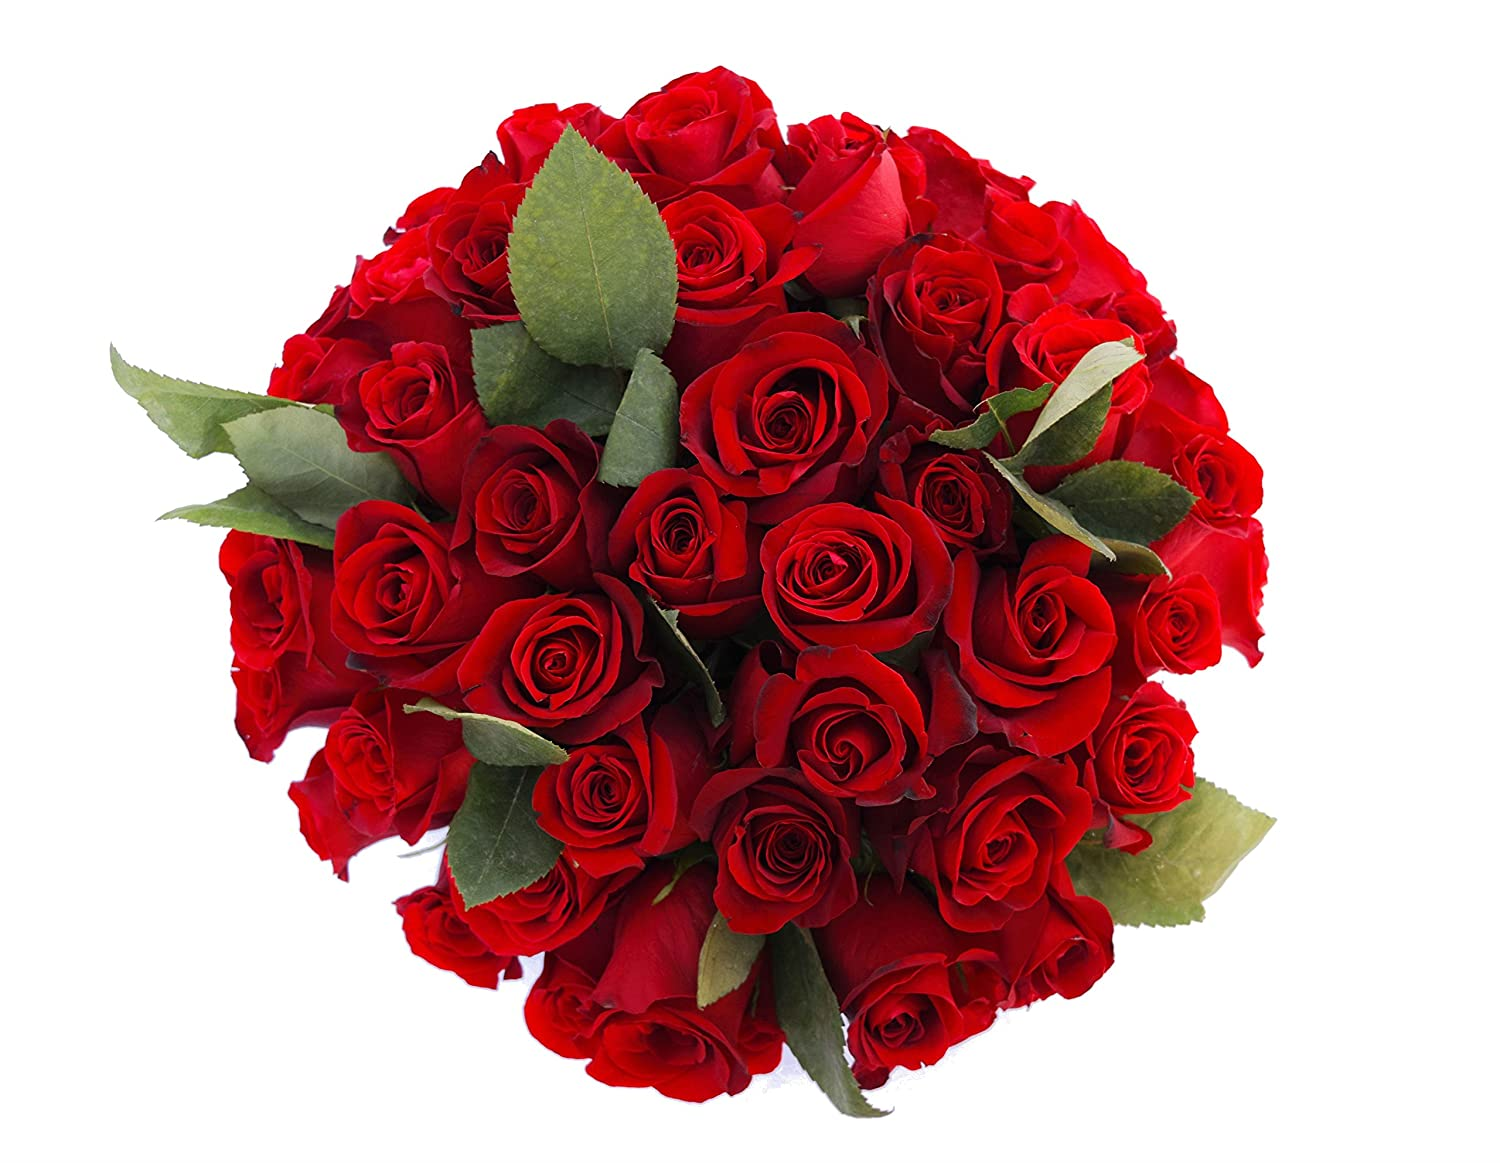 amazoncom 50 farm fresh red roses bouquet by justfreshroses long stem fresh red rose delivery grocery gourmet food - Red Garden Rose Bouquet